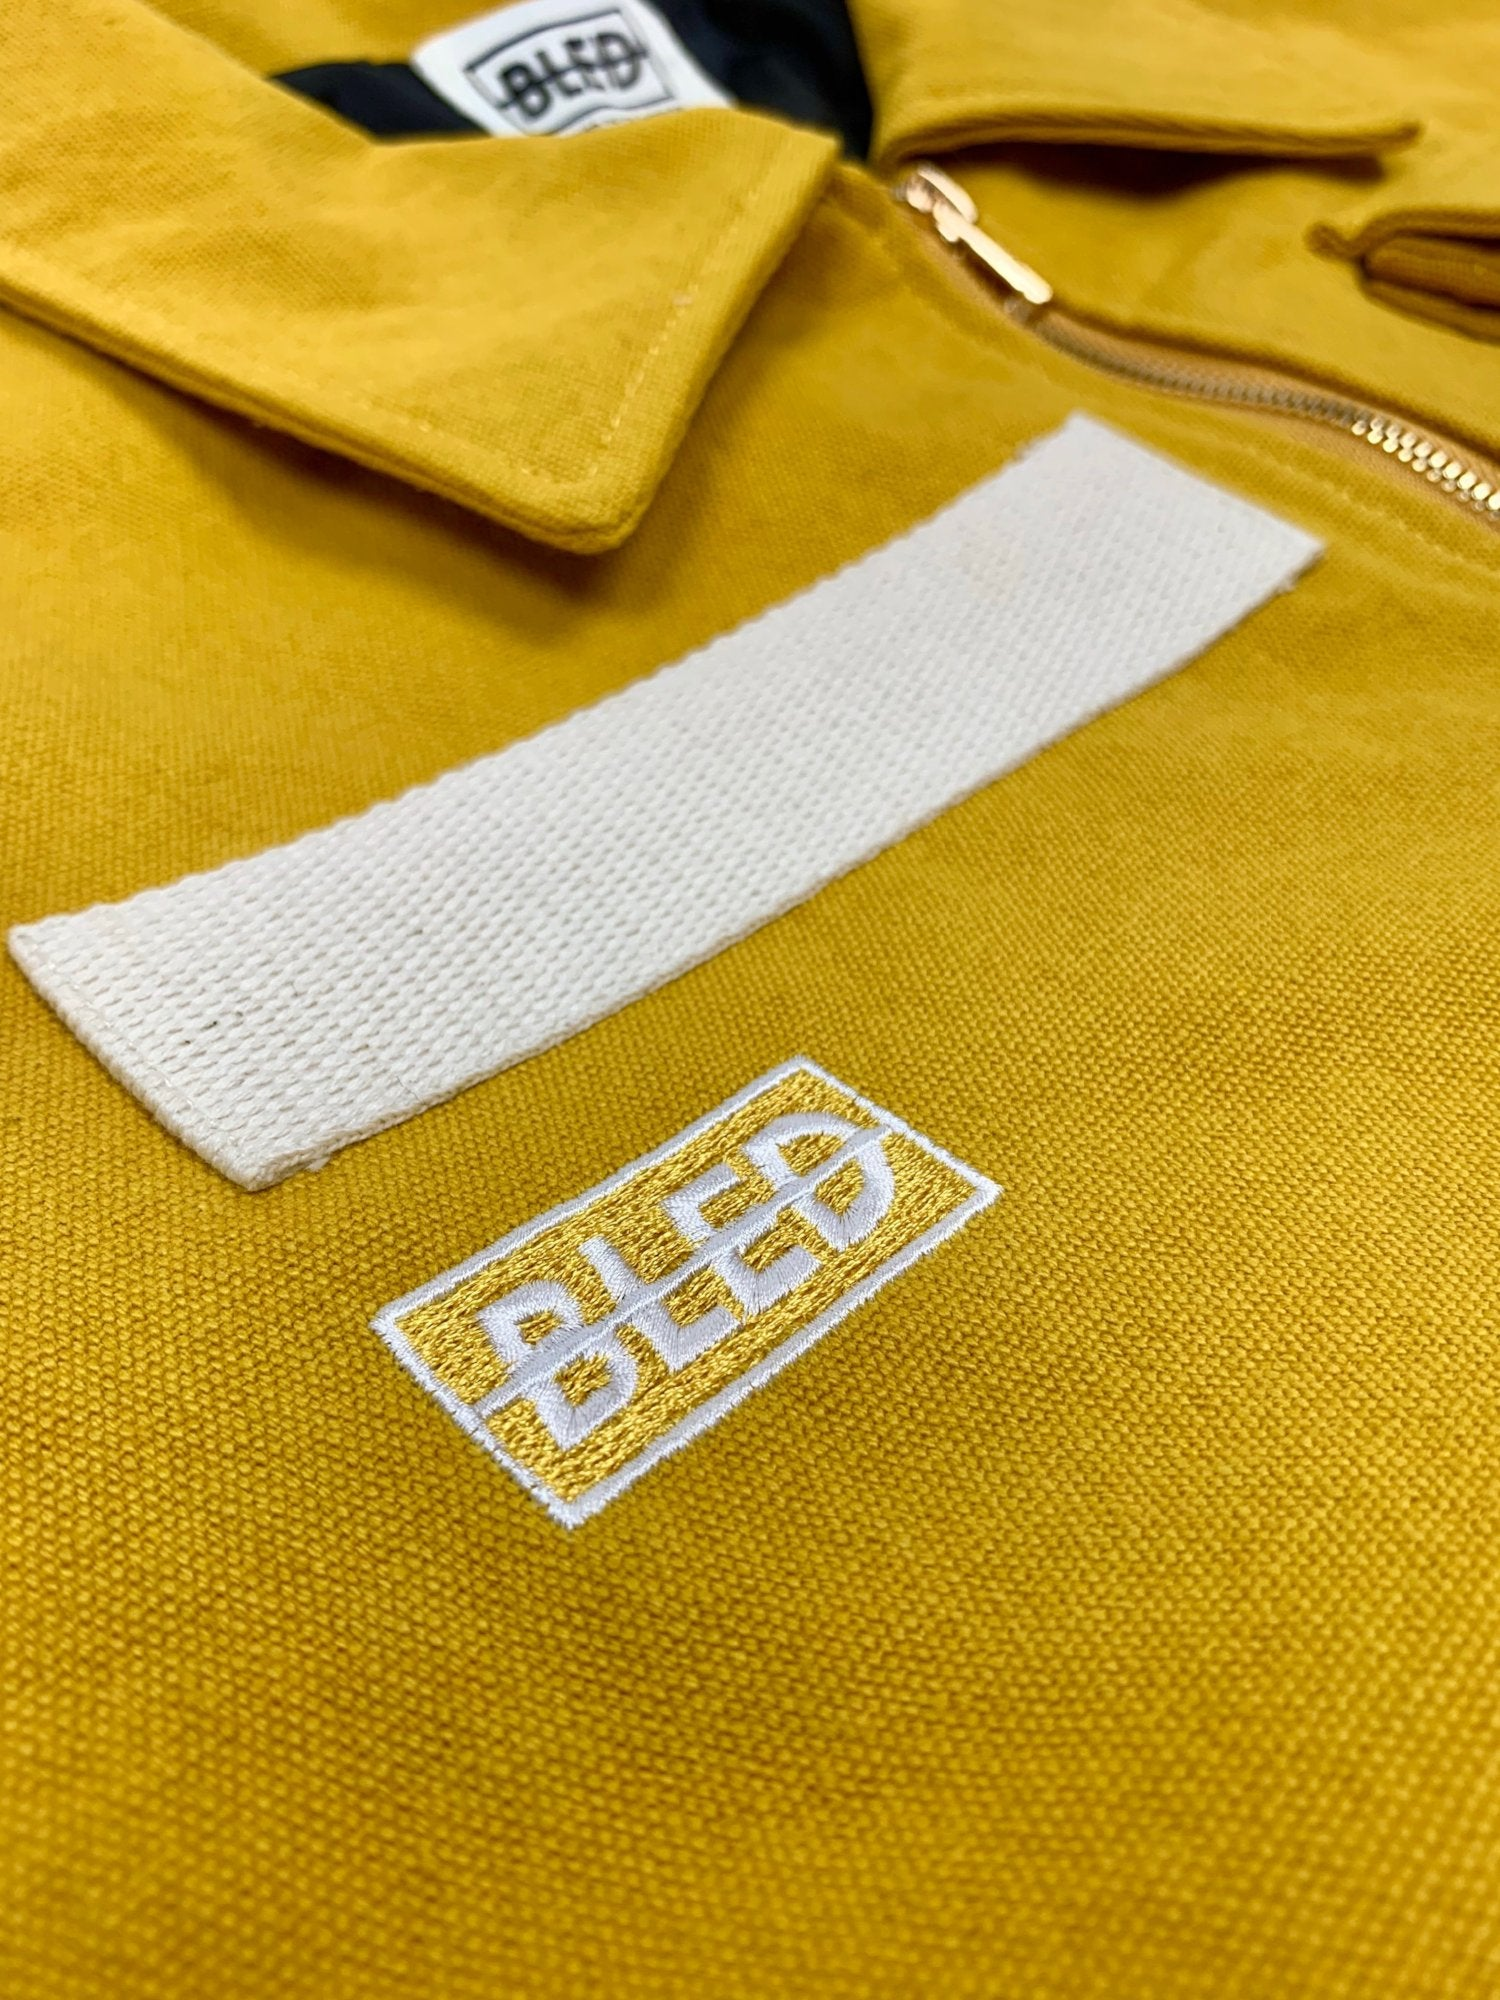 bled clothing bledwear twill jacket mustard yellow pocket